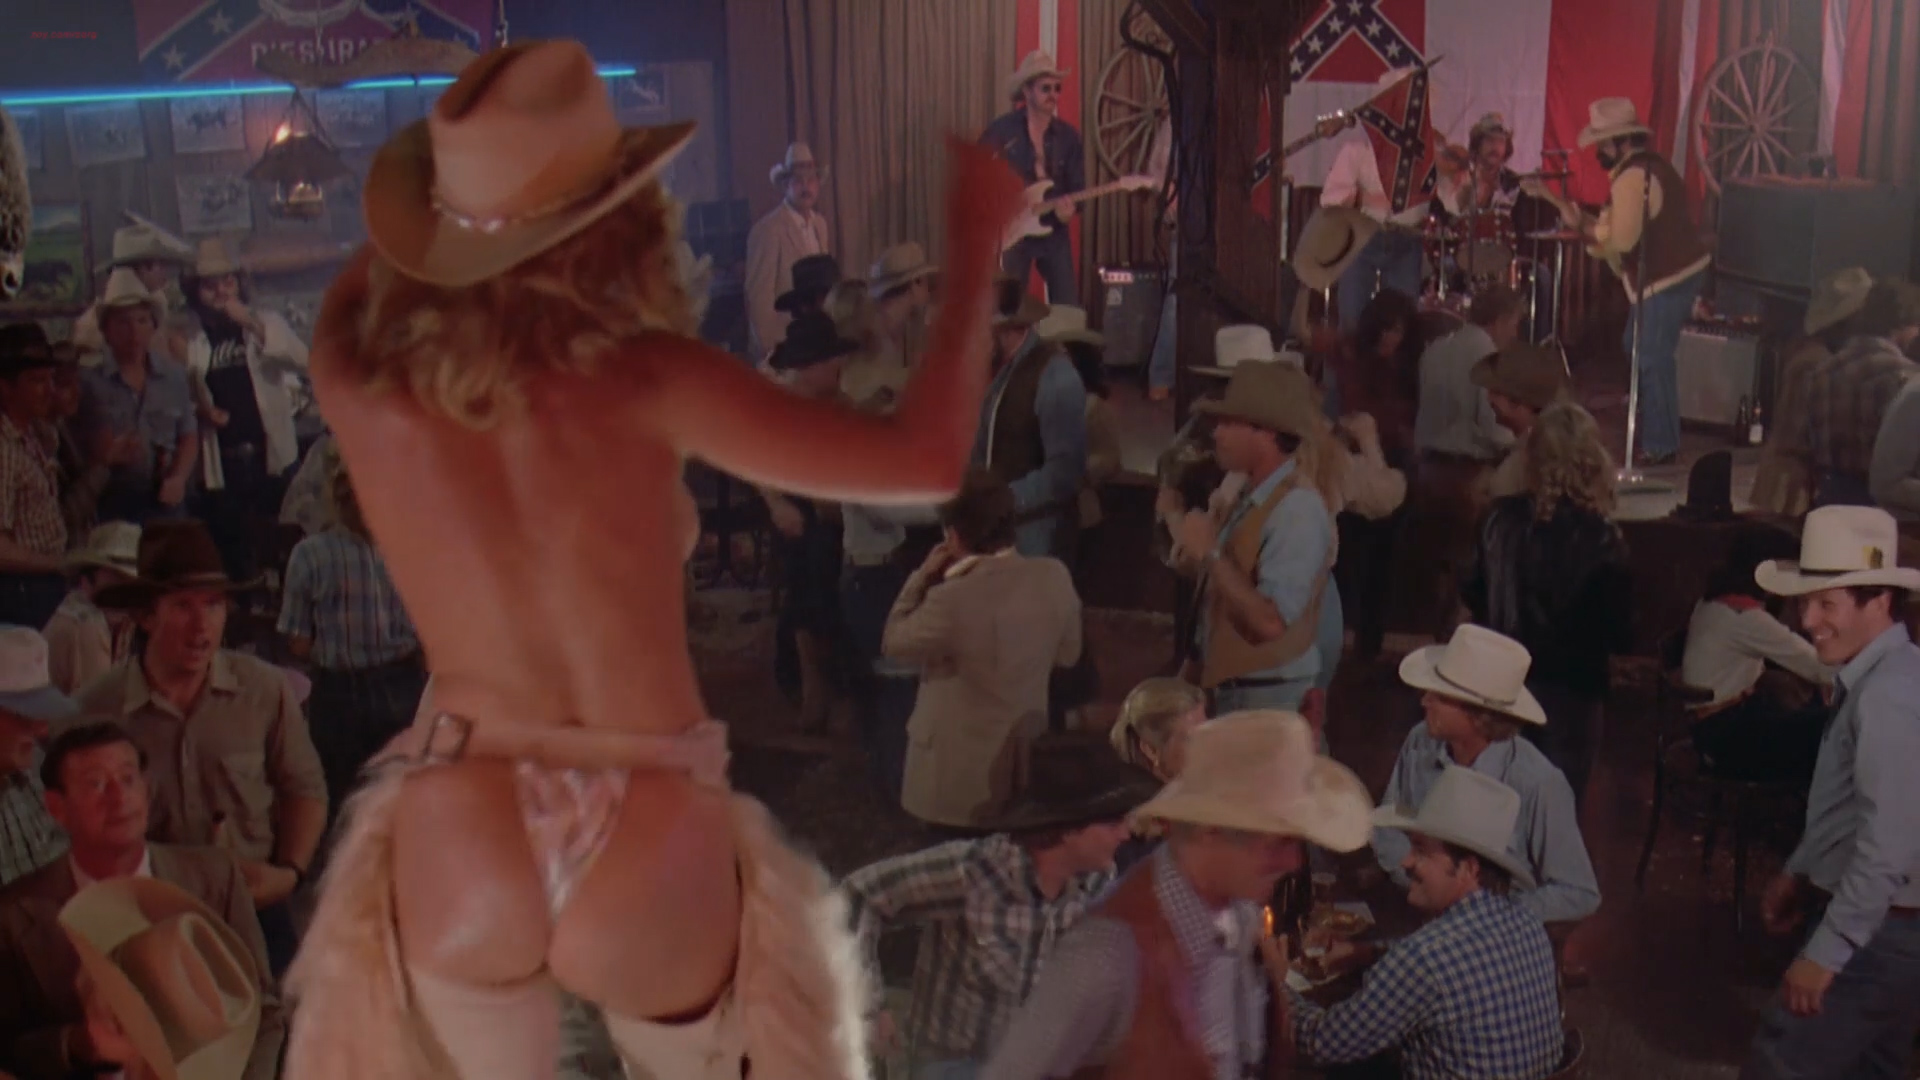 Greta Blackburn nude butt and topless Annette O'Toole not nude hot - 48 Hrs (1982) hd1080p (3)